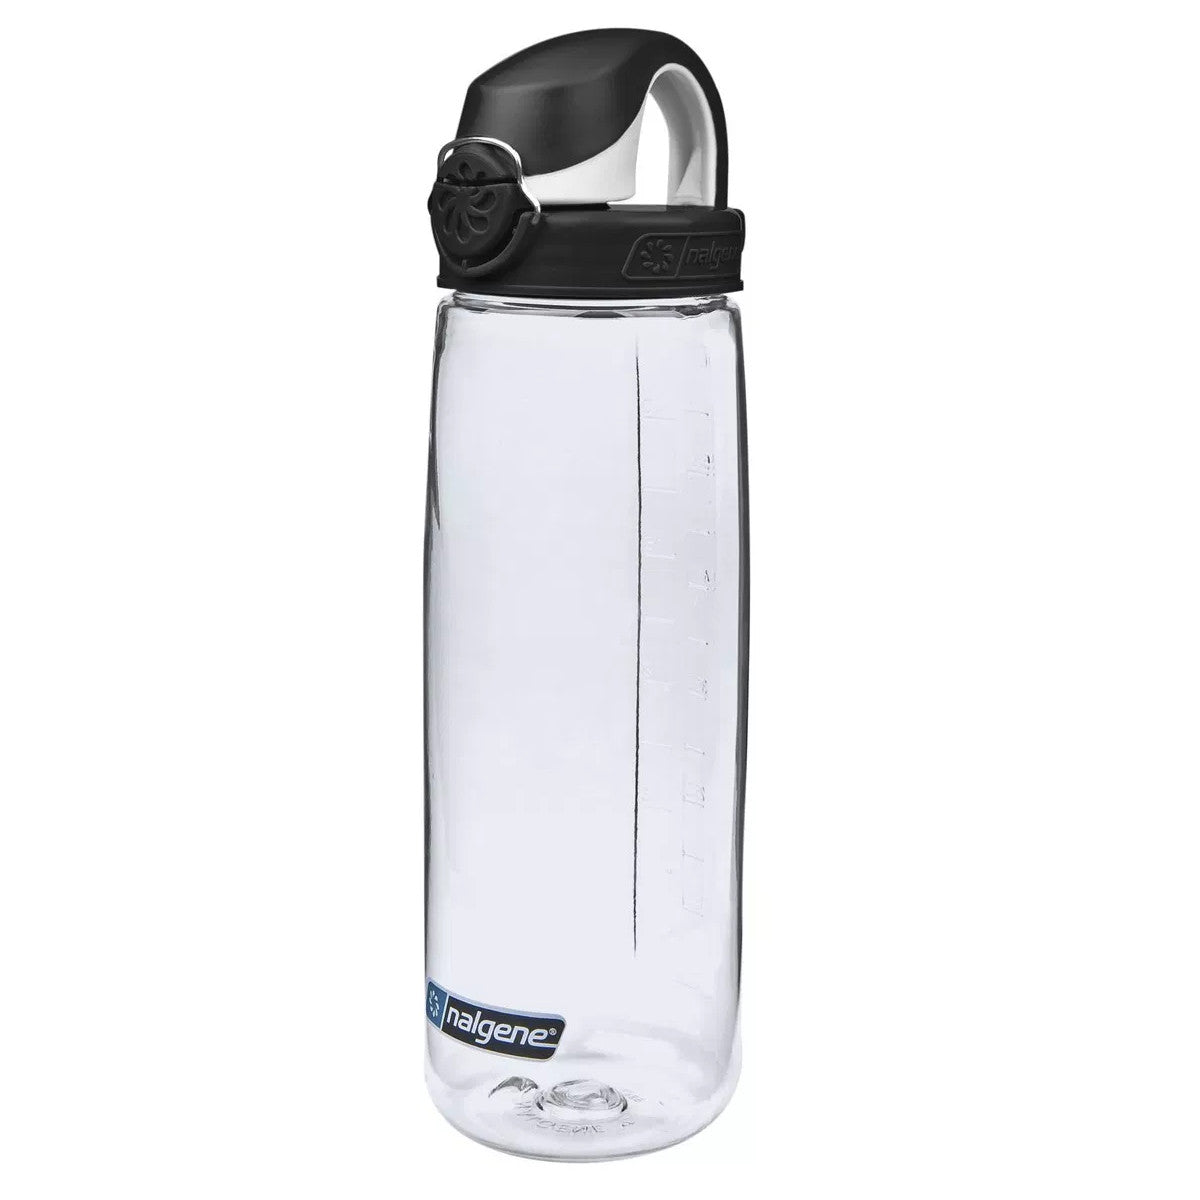 Nalgene OTF 700ml Bottle, with clear bottle and black lid top